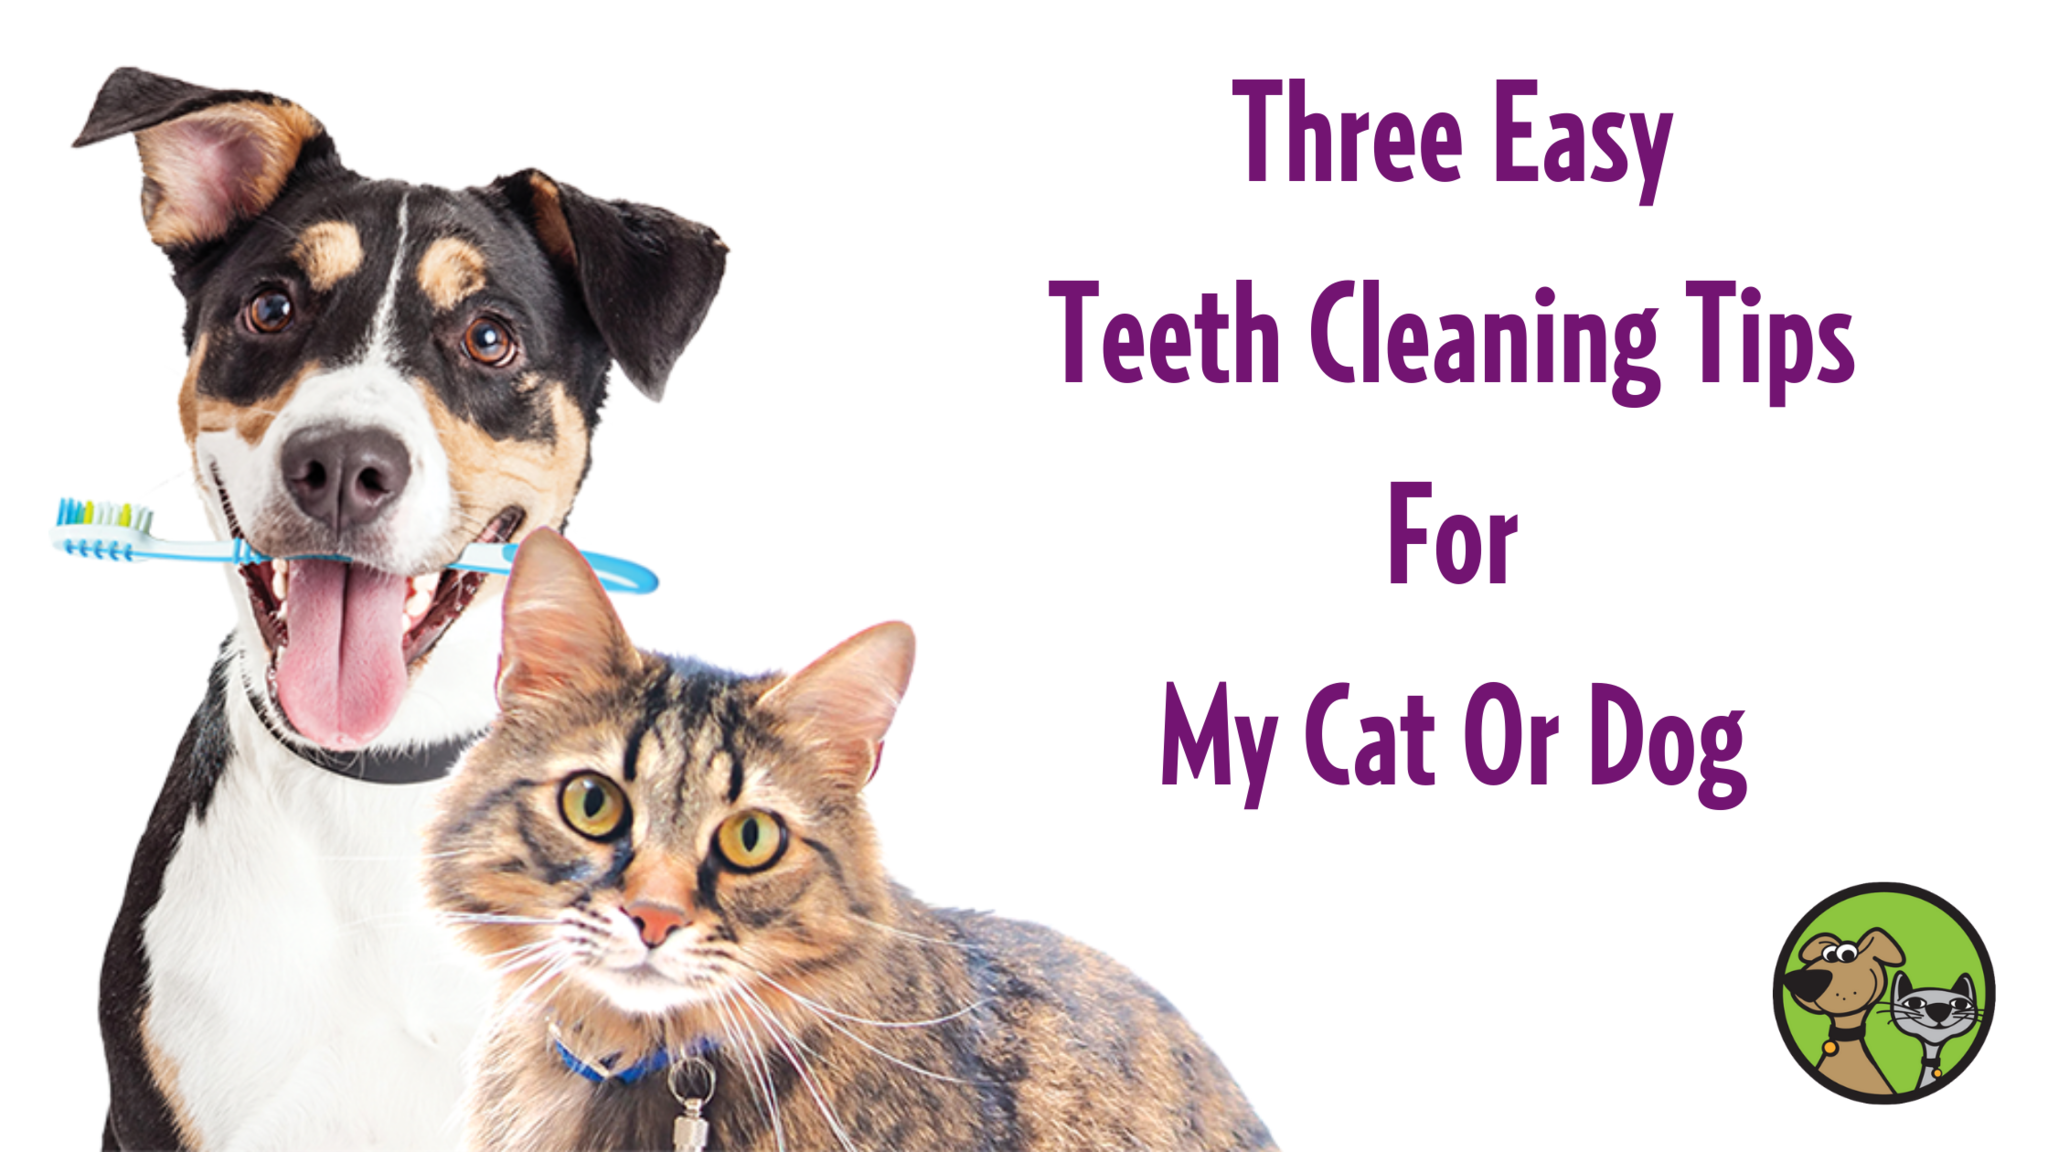 Three Easy Teeth Cleaning Tips For My Cat Or Dog